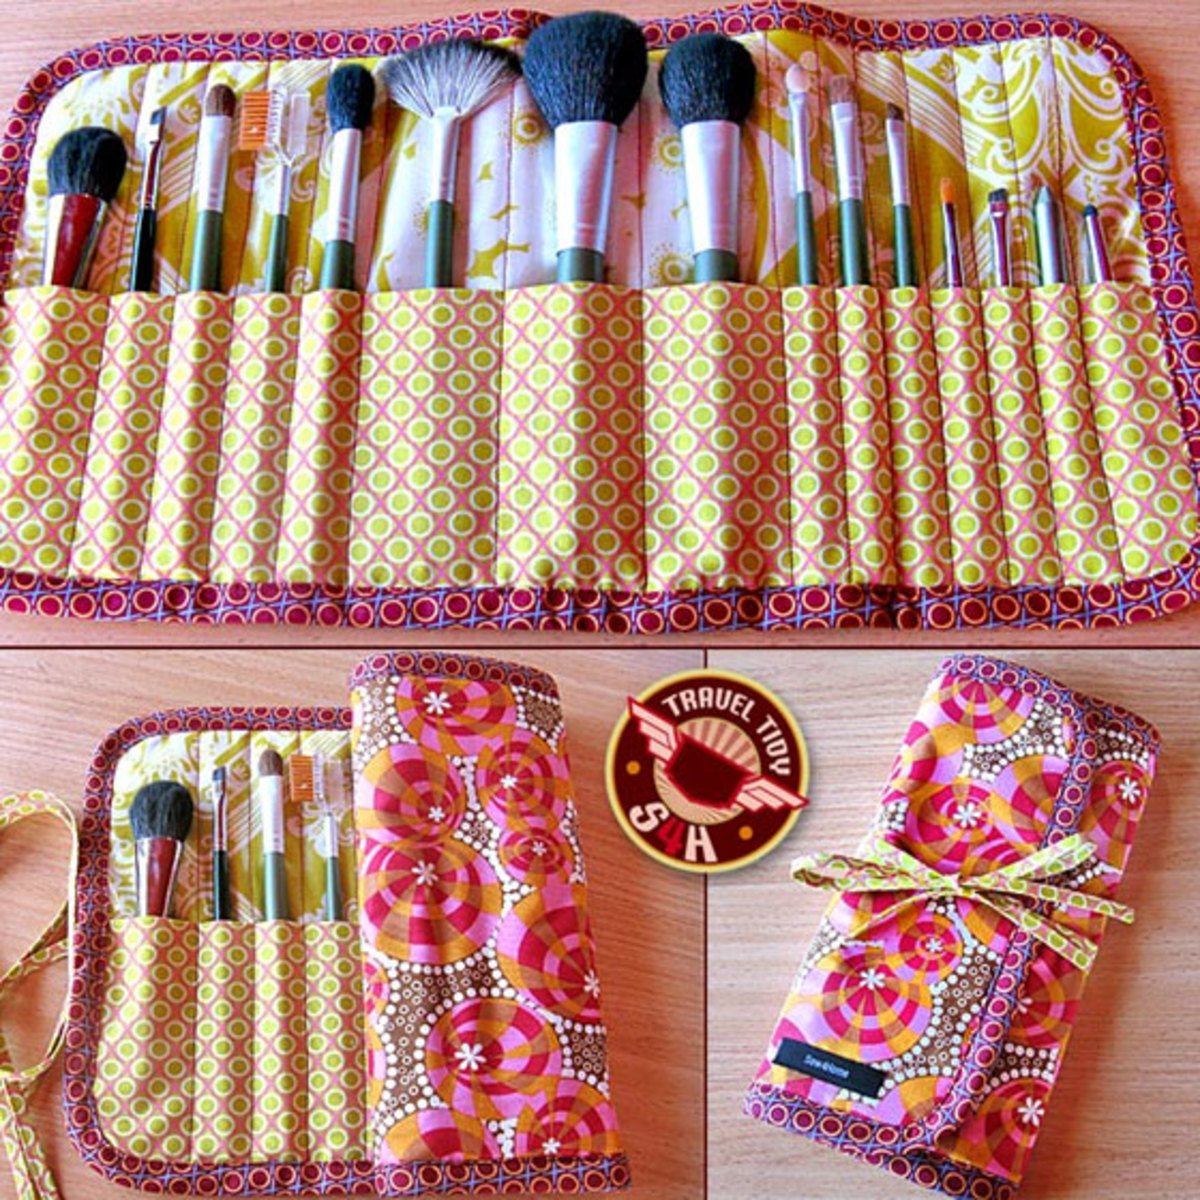 Roll-up Makeup Brush Case | DIY Makeup Organization Ideas